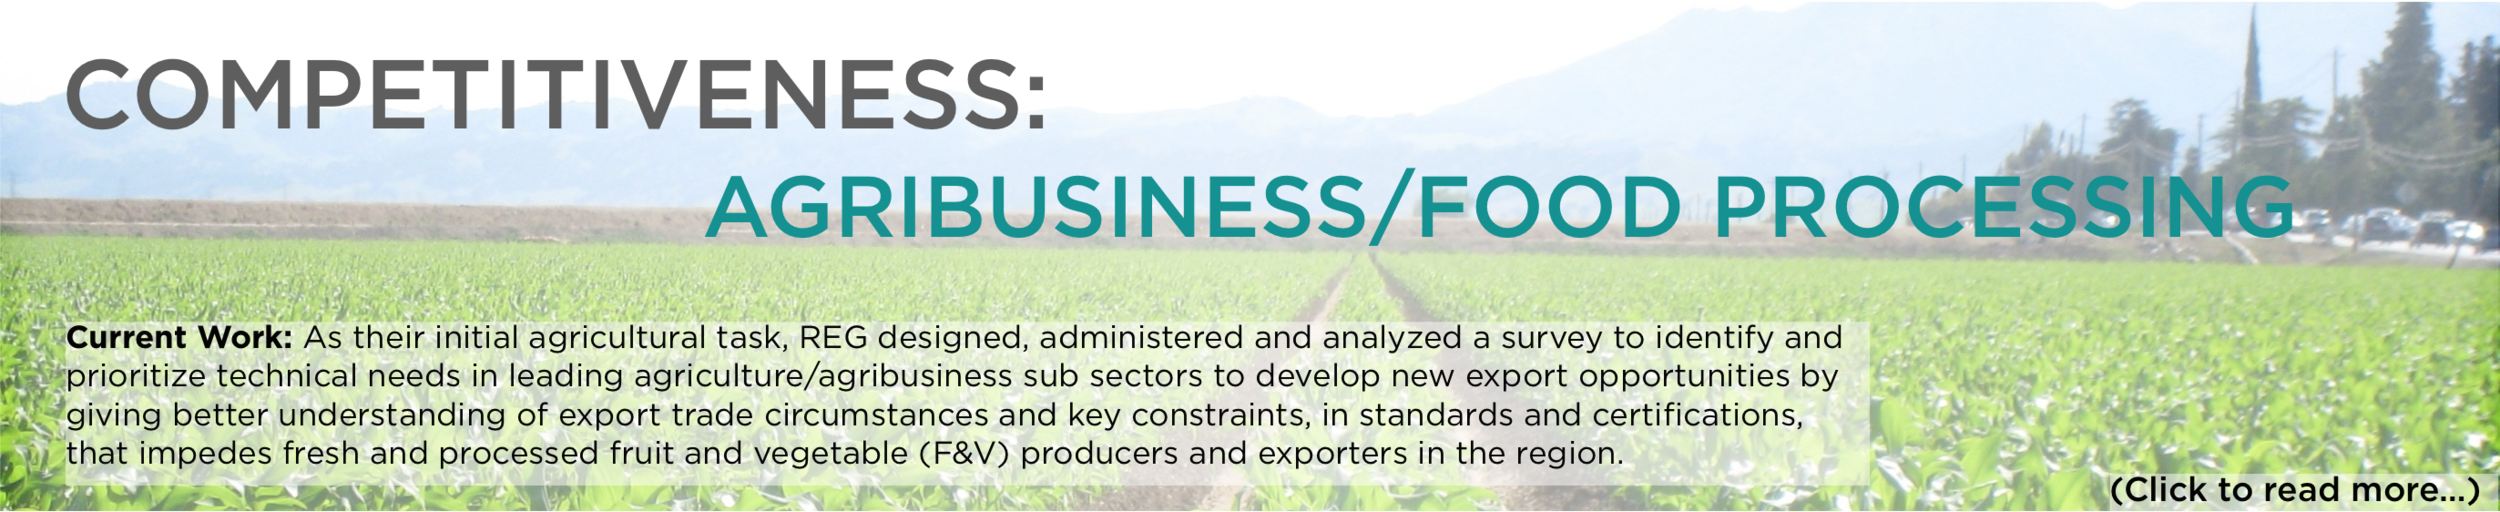 Agribusiness/Food Processing